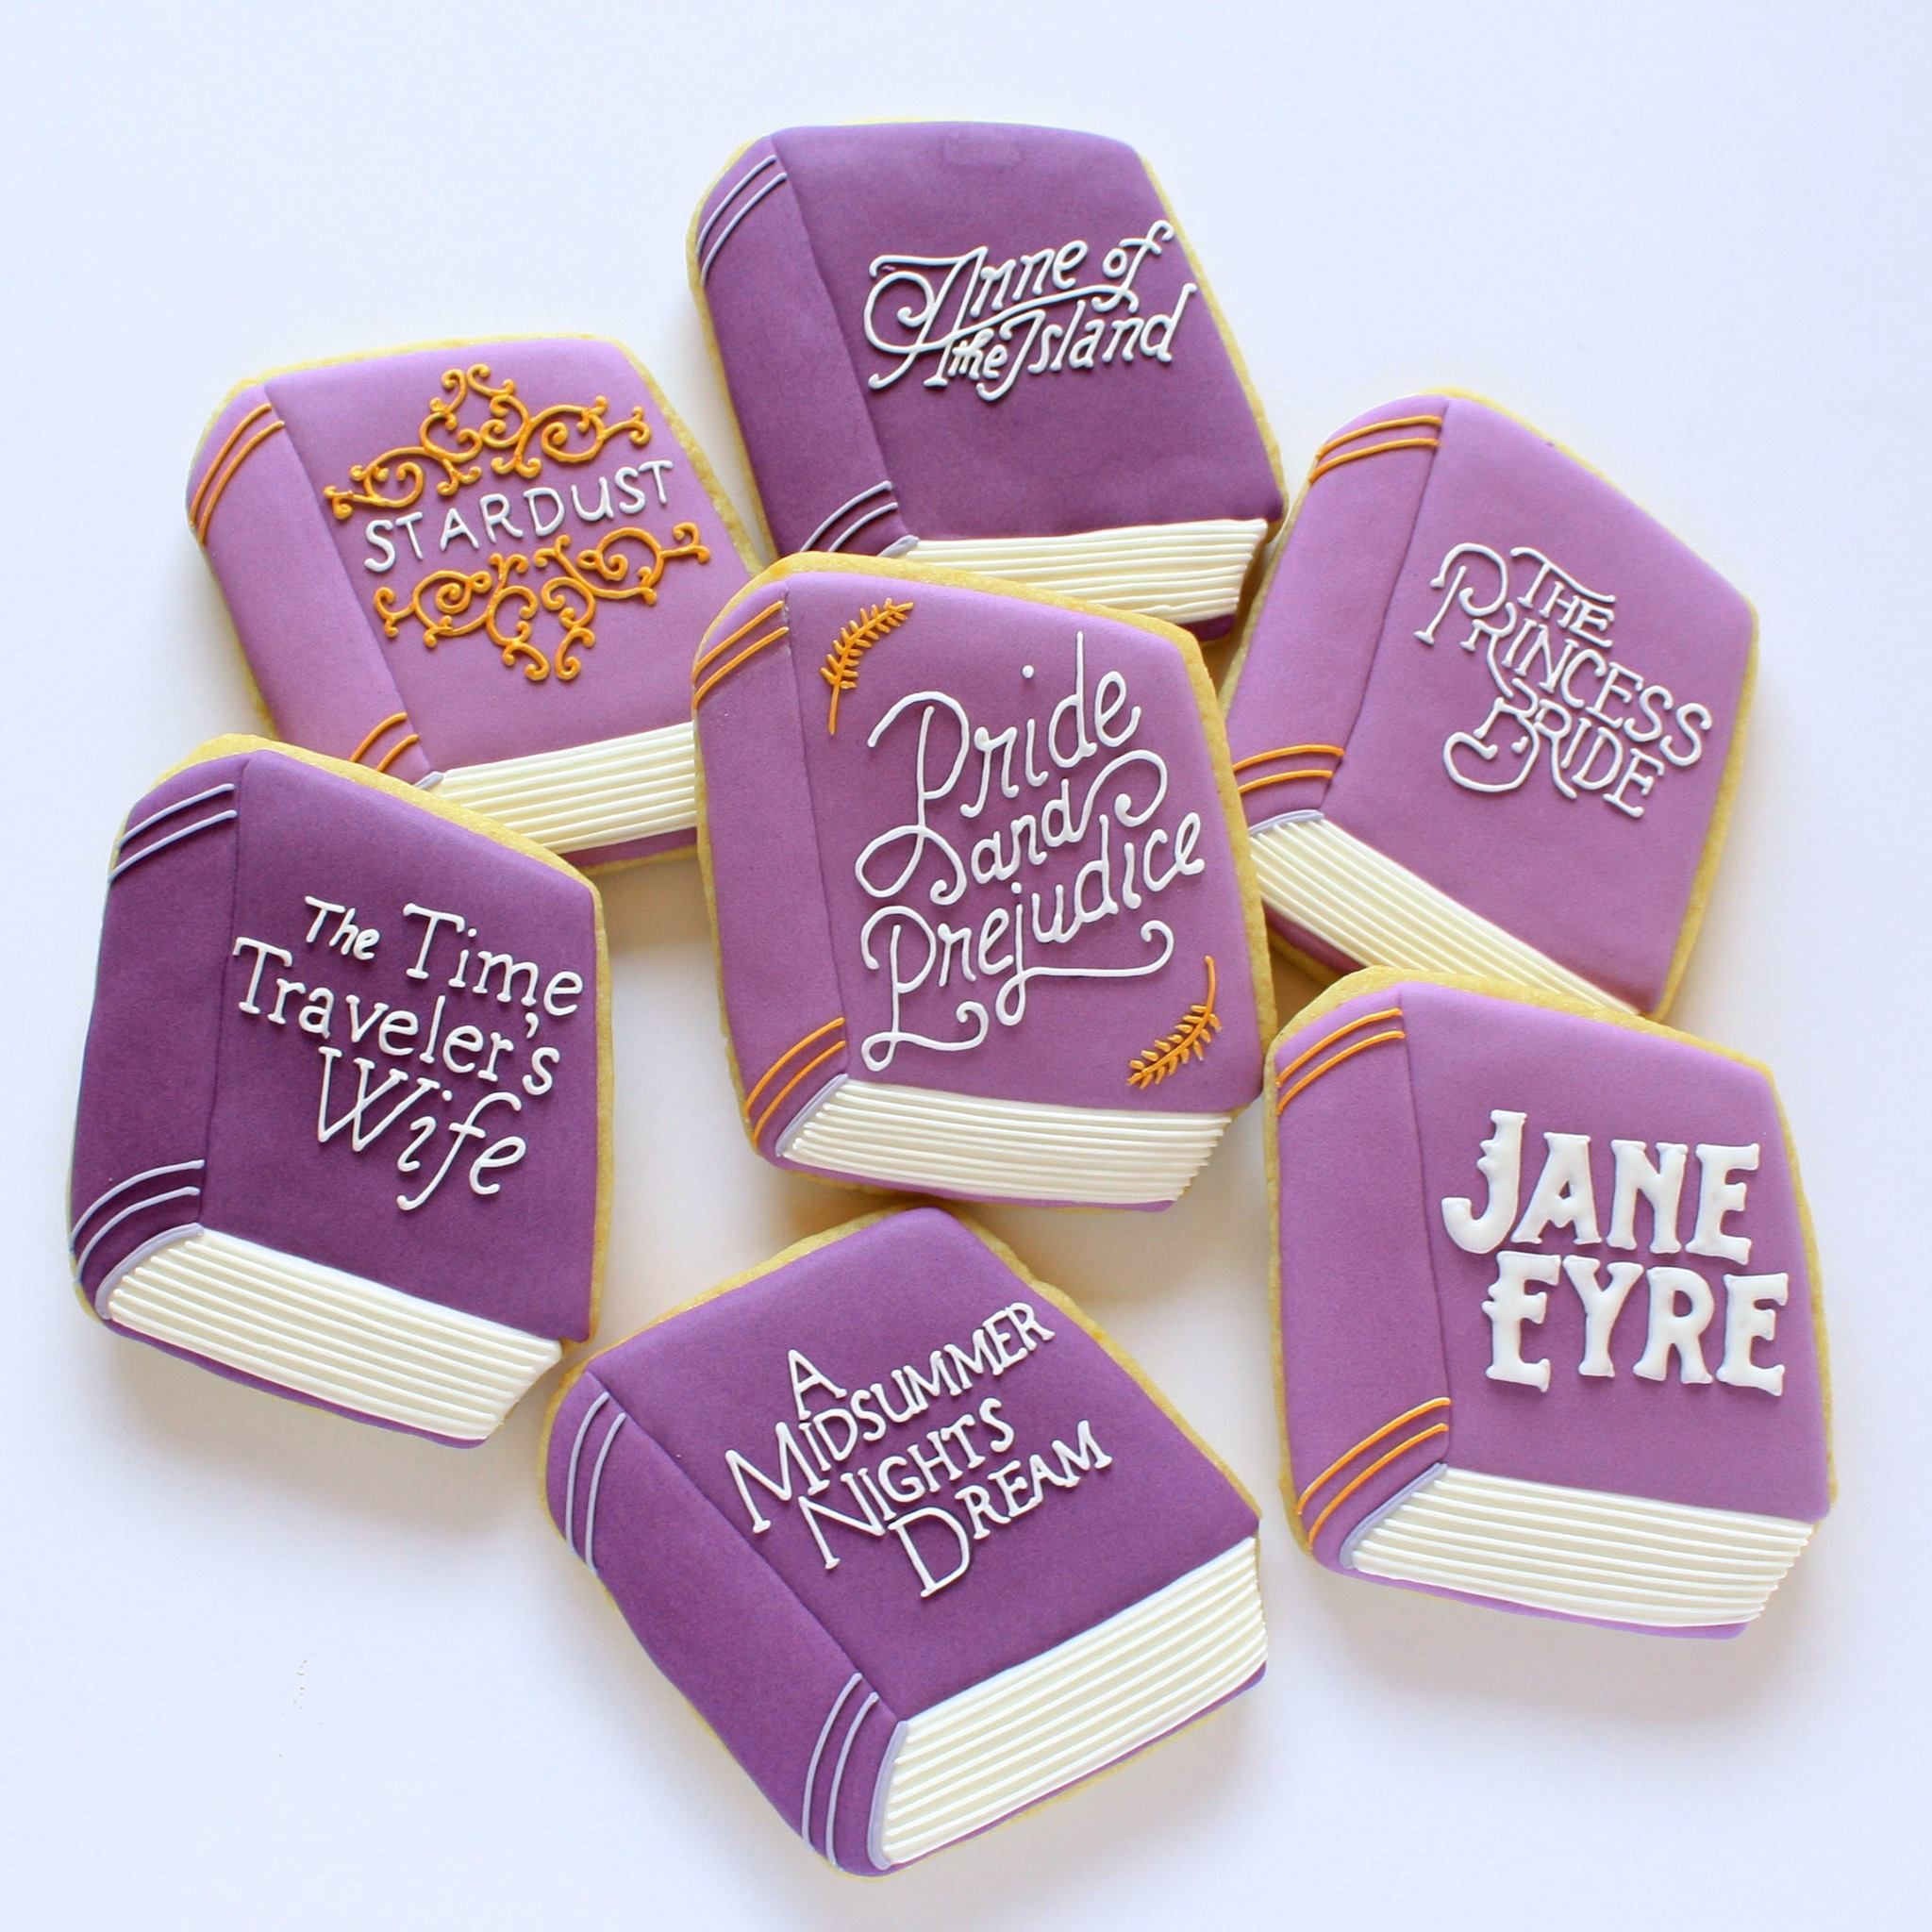 (1) Sweet Pea Cookies - book cookies